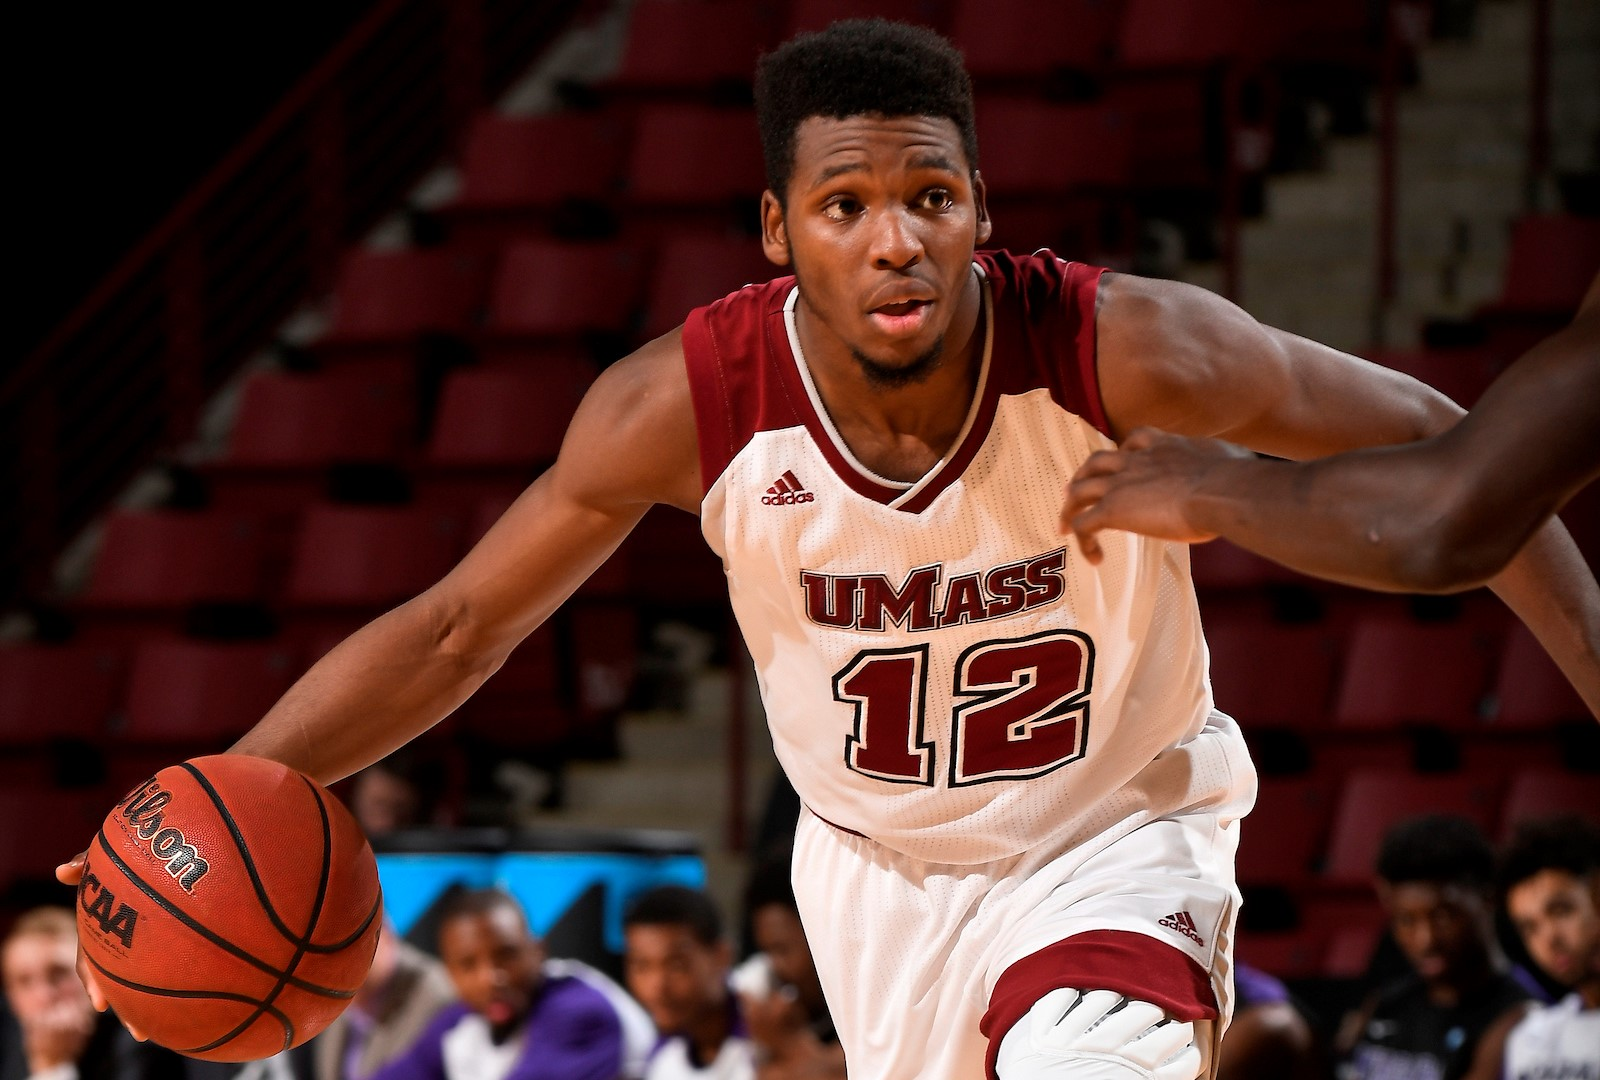 saturday matinee as men's hoops heads to fordham on saturday